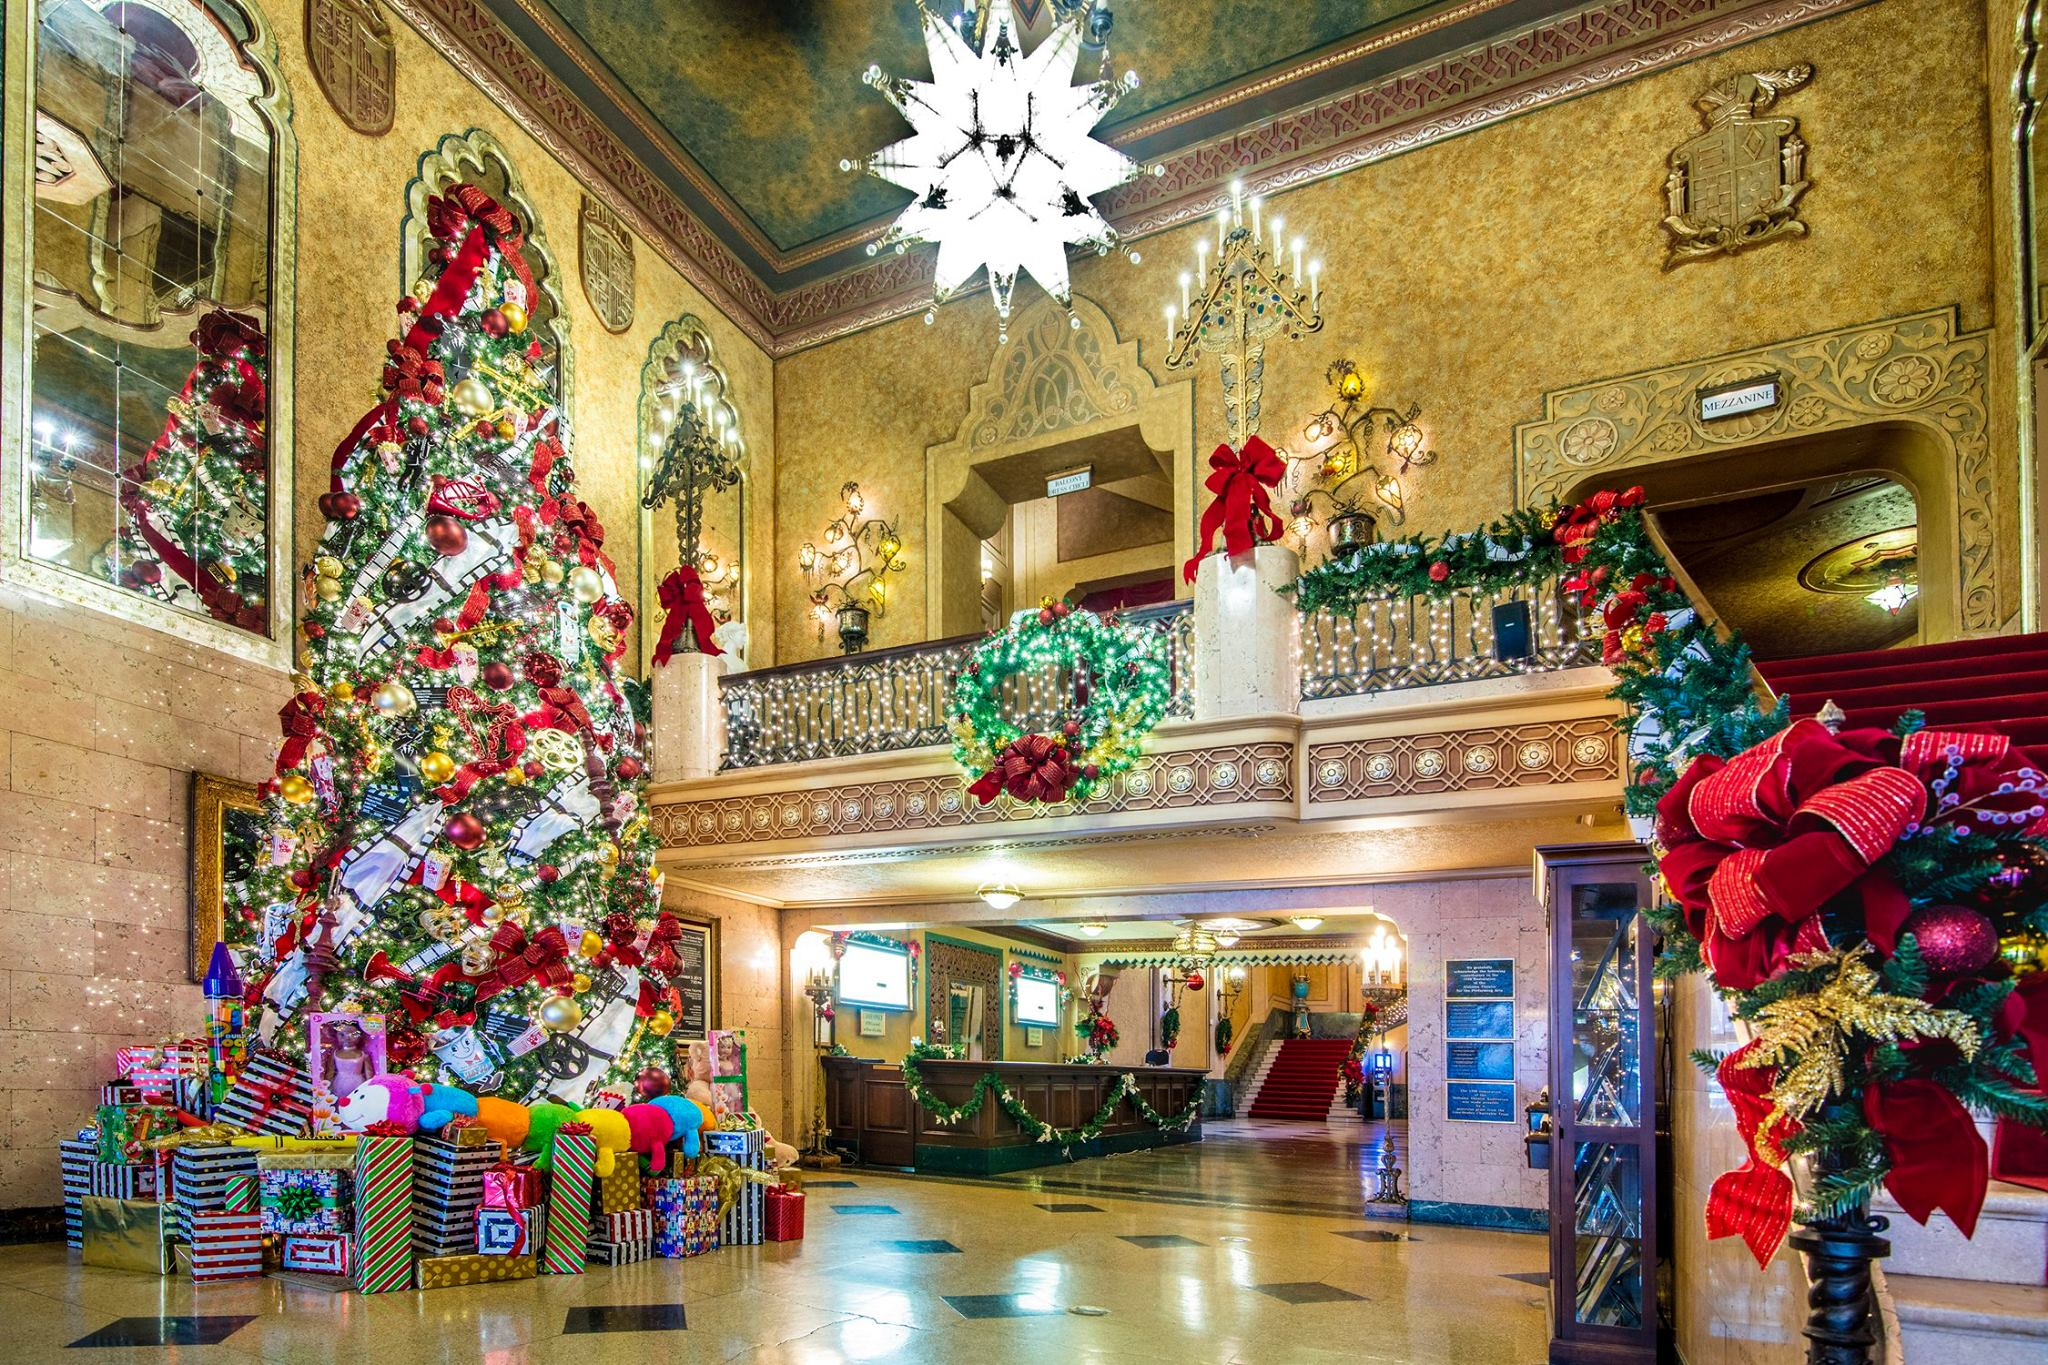 Alabama Theater Christmas Vacation Dec 8,2020 2019 Holiday Film Series, Alabama Theatre   Birmingham Mommy